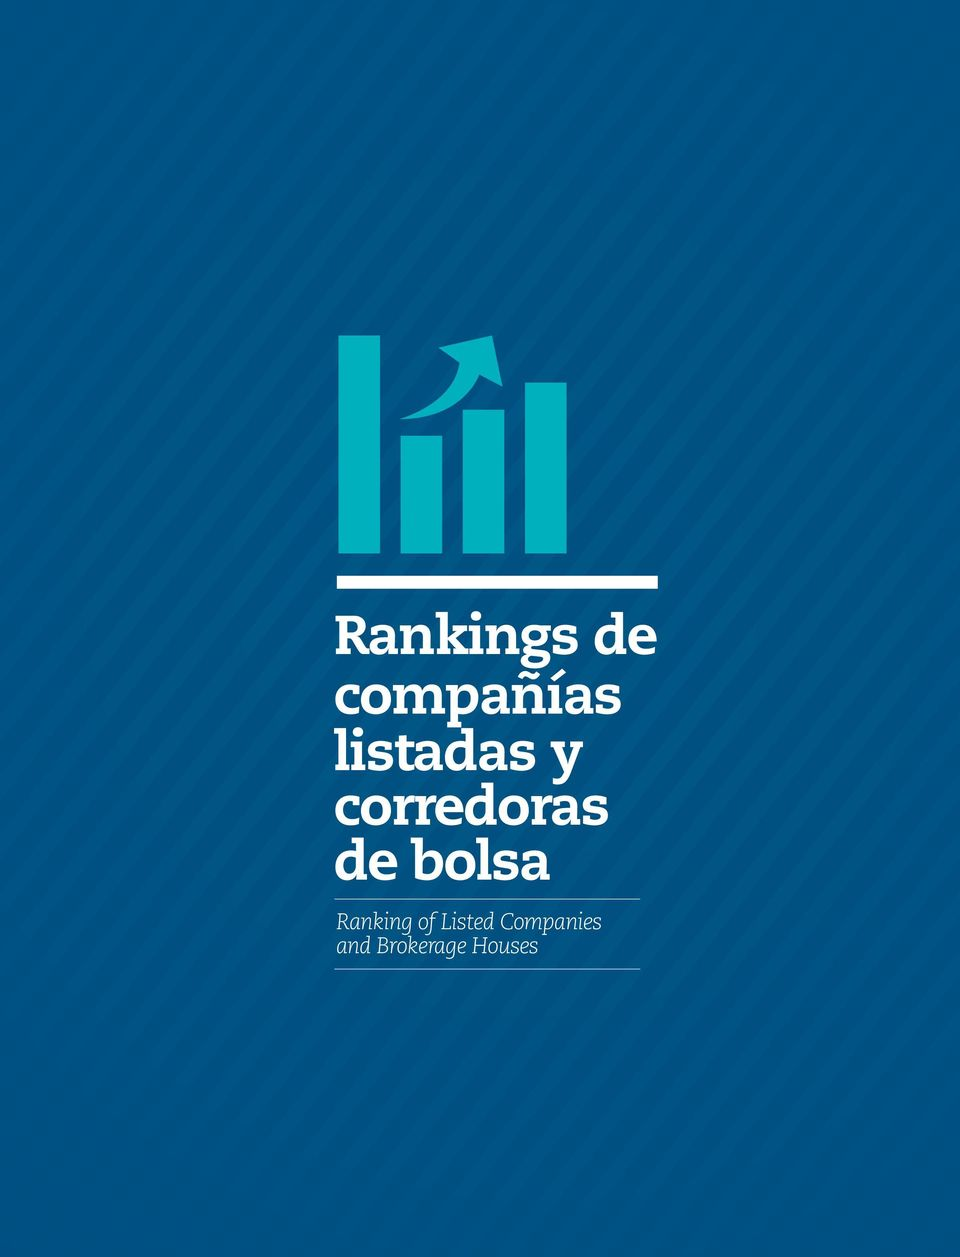 bolsa Ranking of Listed